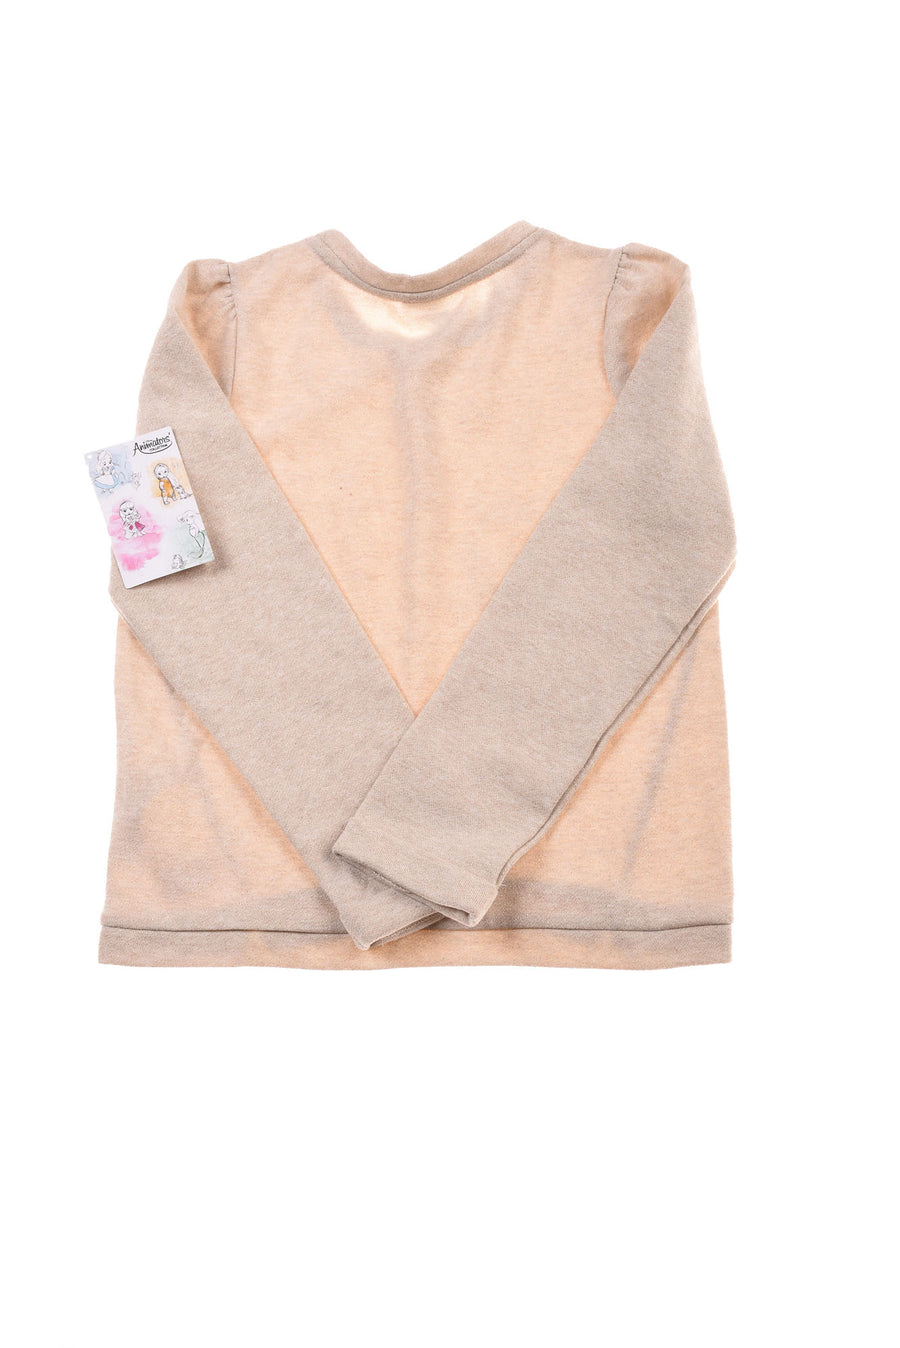 NEW Disney Store Girl's Sweater 9/10 Tan & Gold Tone